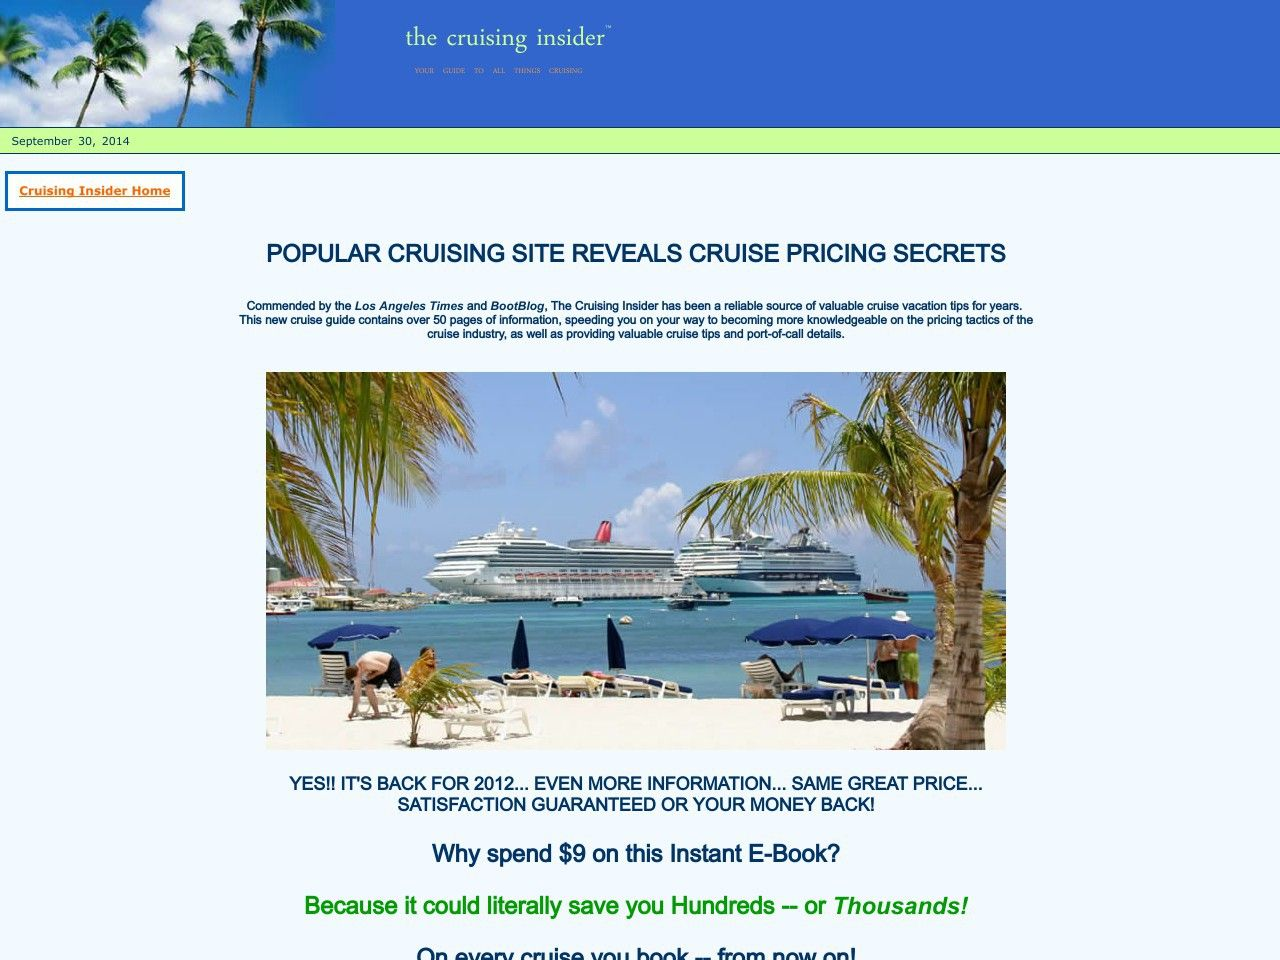 [Get] Cruiseguide 2011 - $9 Product, 50% Commission! - http://www.vnulab.be/lab-review/cruiseguide-2011-9-product-50-commission